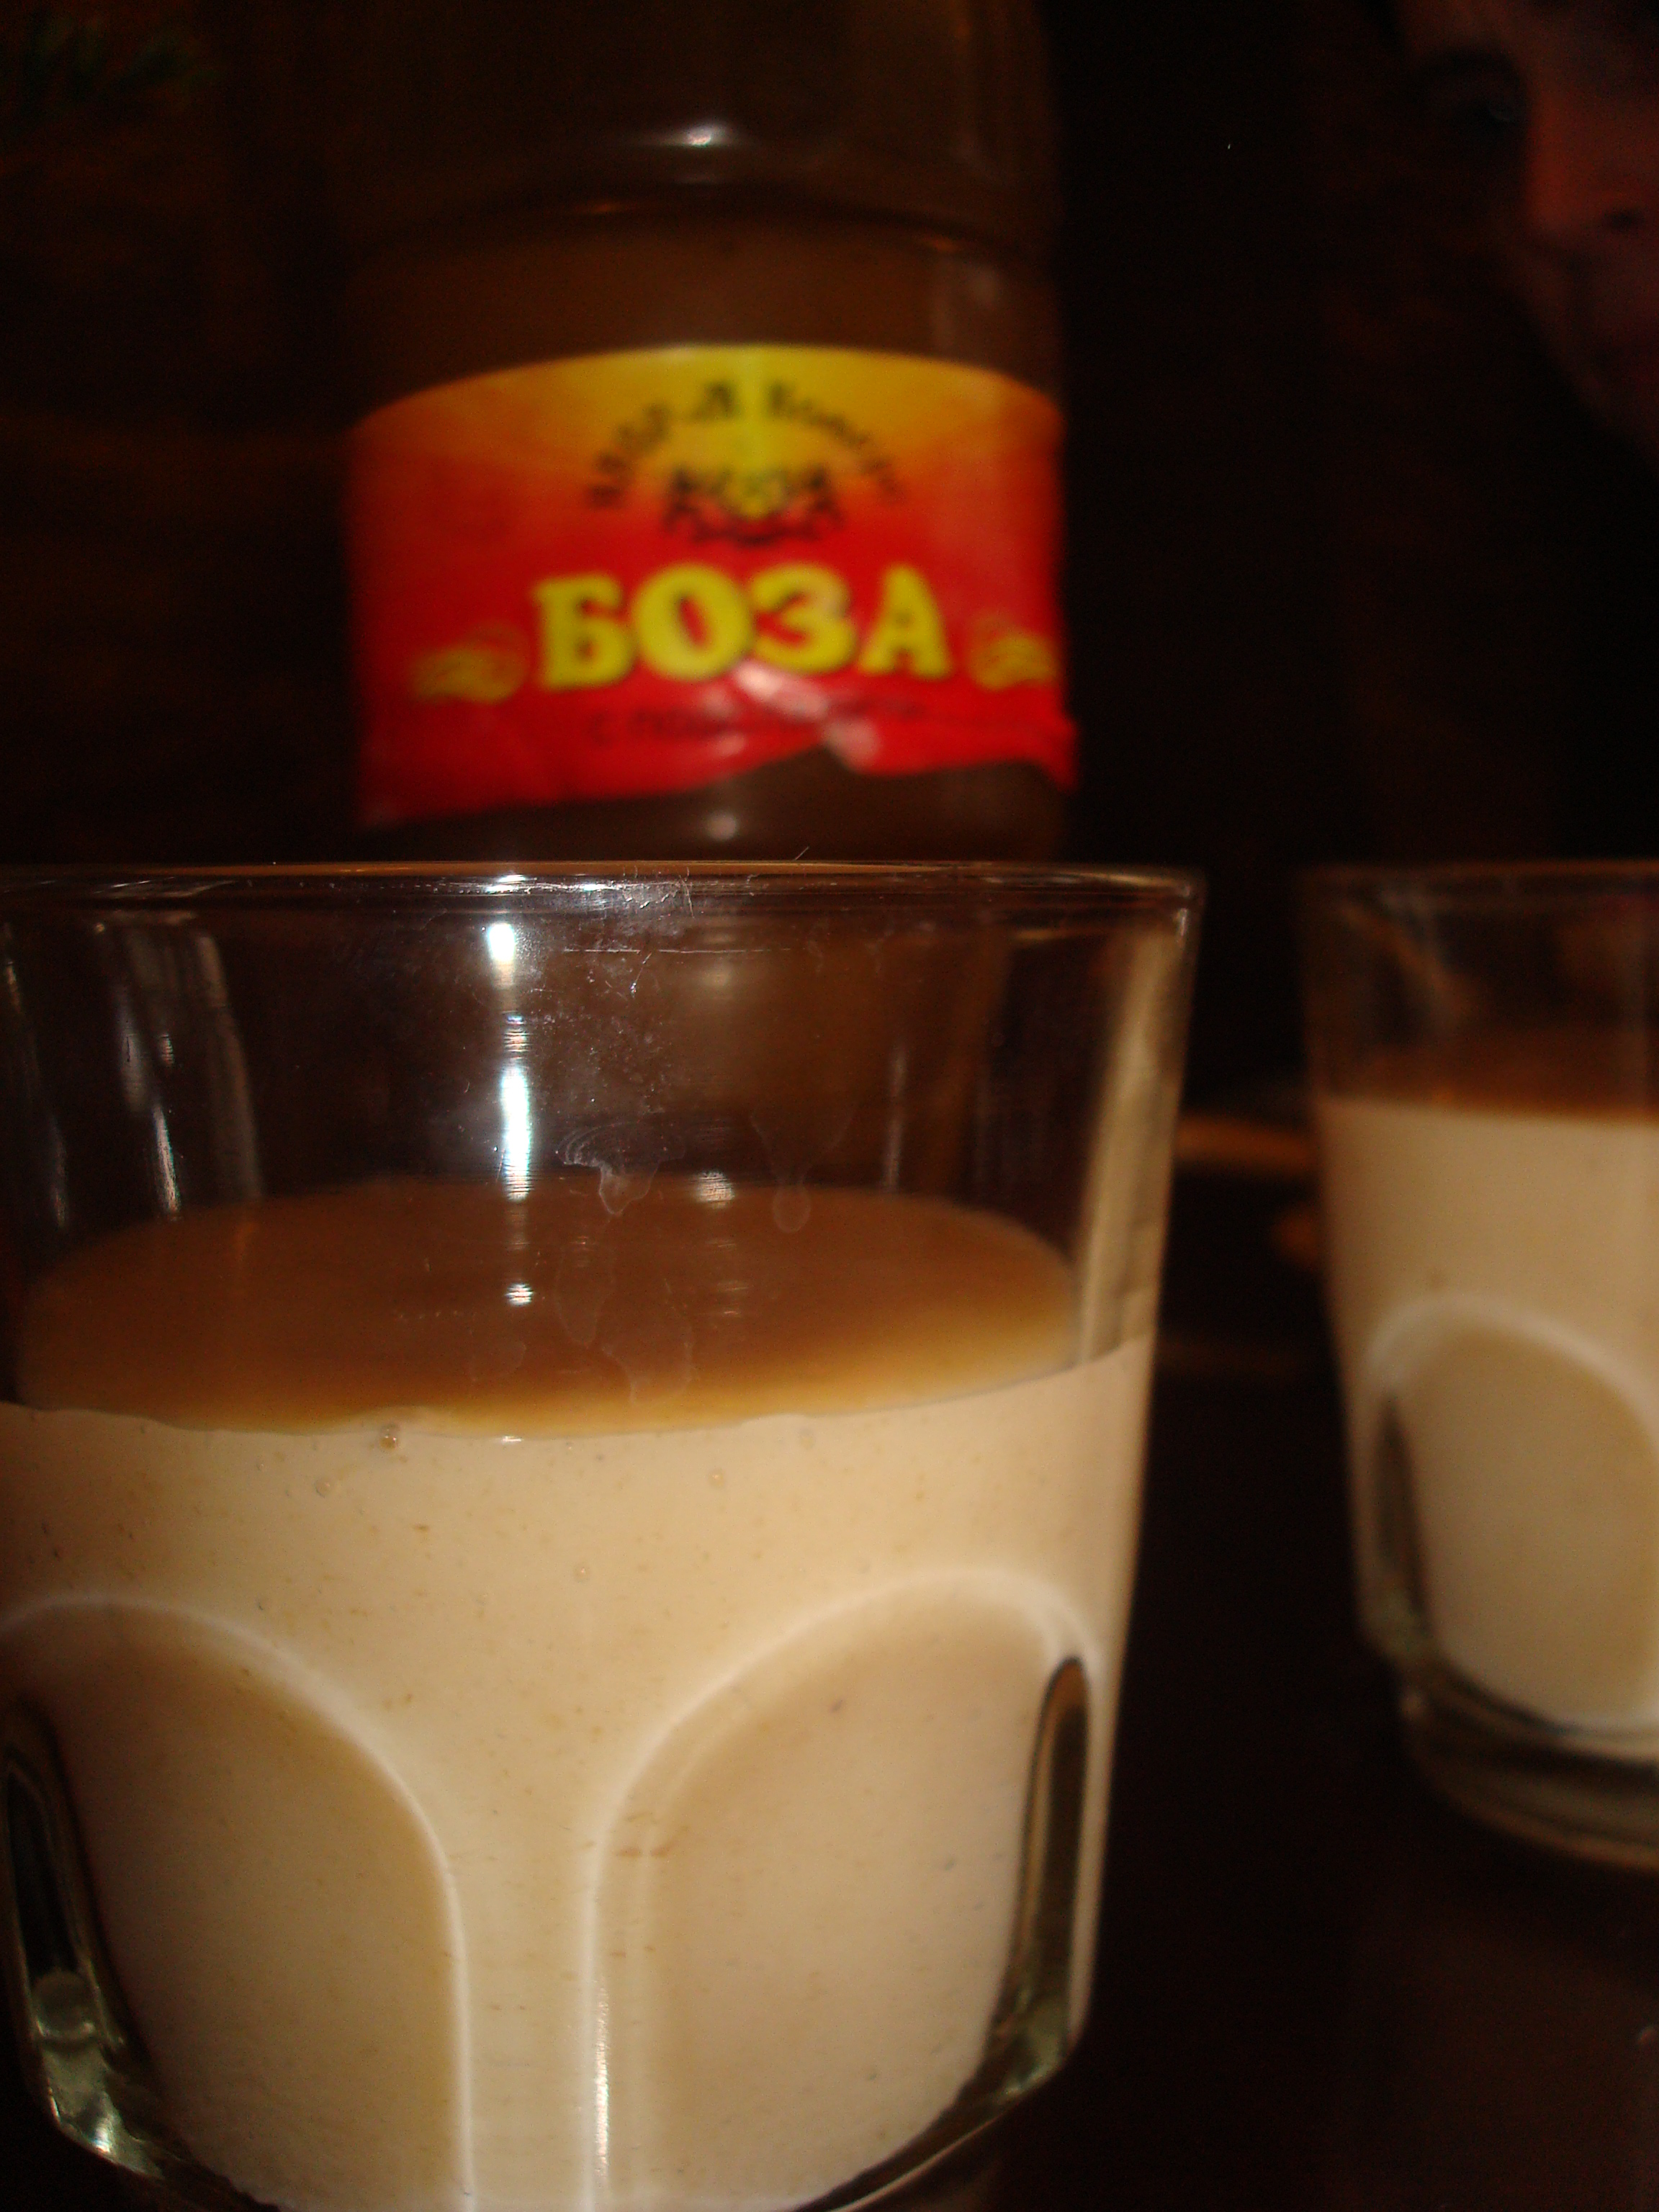 The drink Boza.